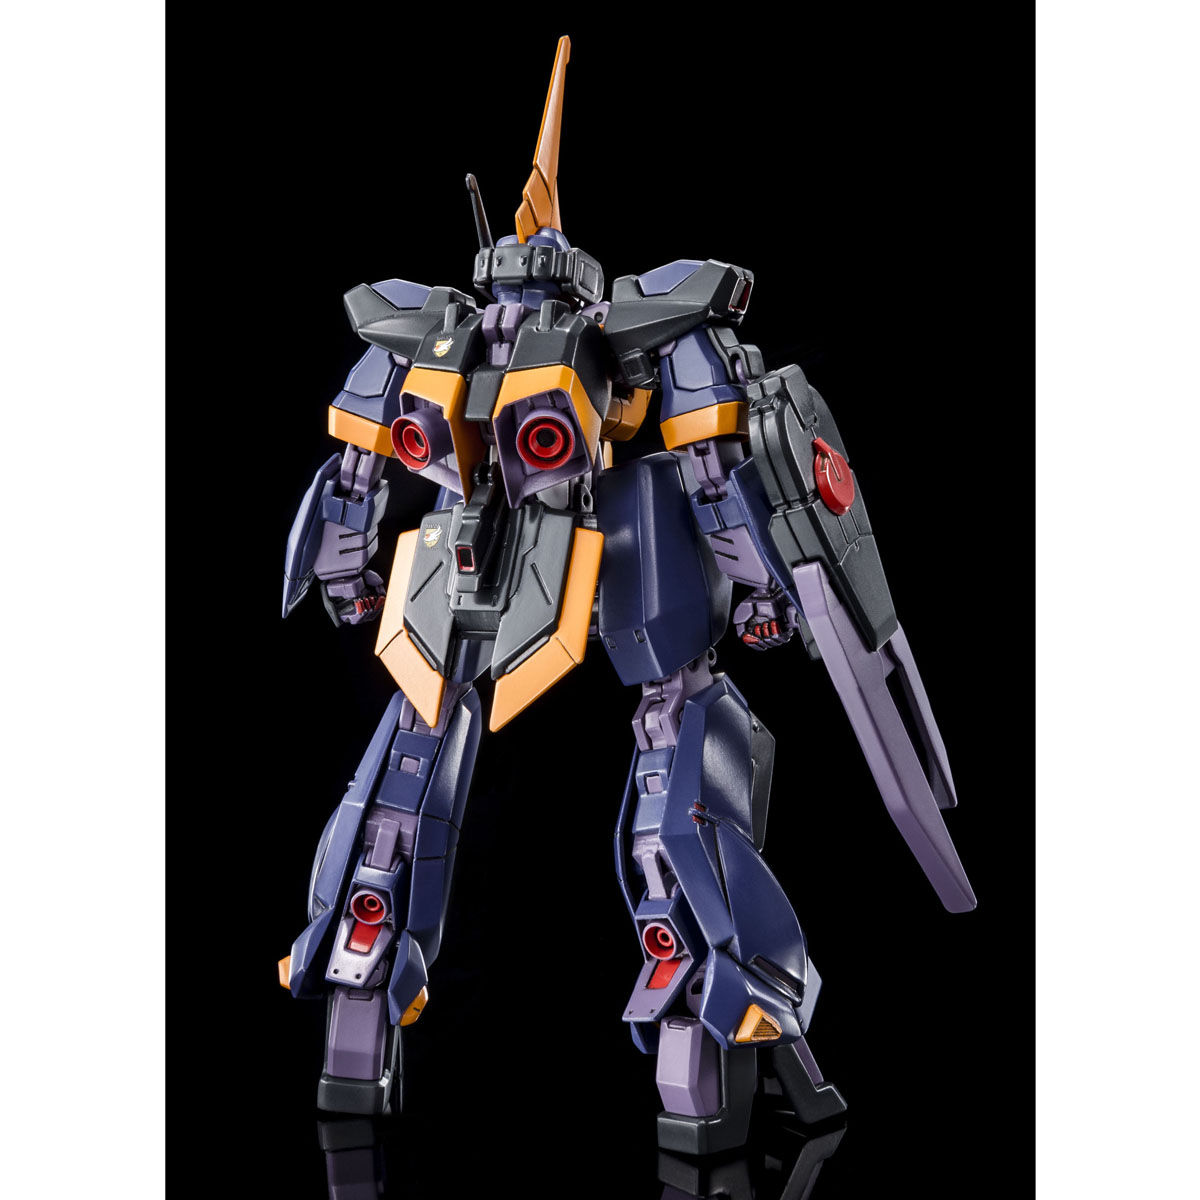 HG 1/144 BARZAM(A.O.Z RE-BOOT Ver.) [Oct 2021 Delivery]